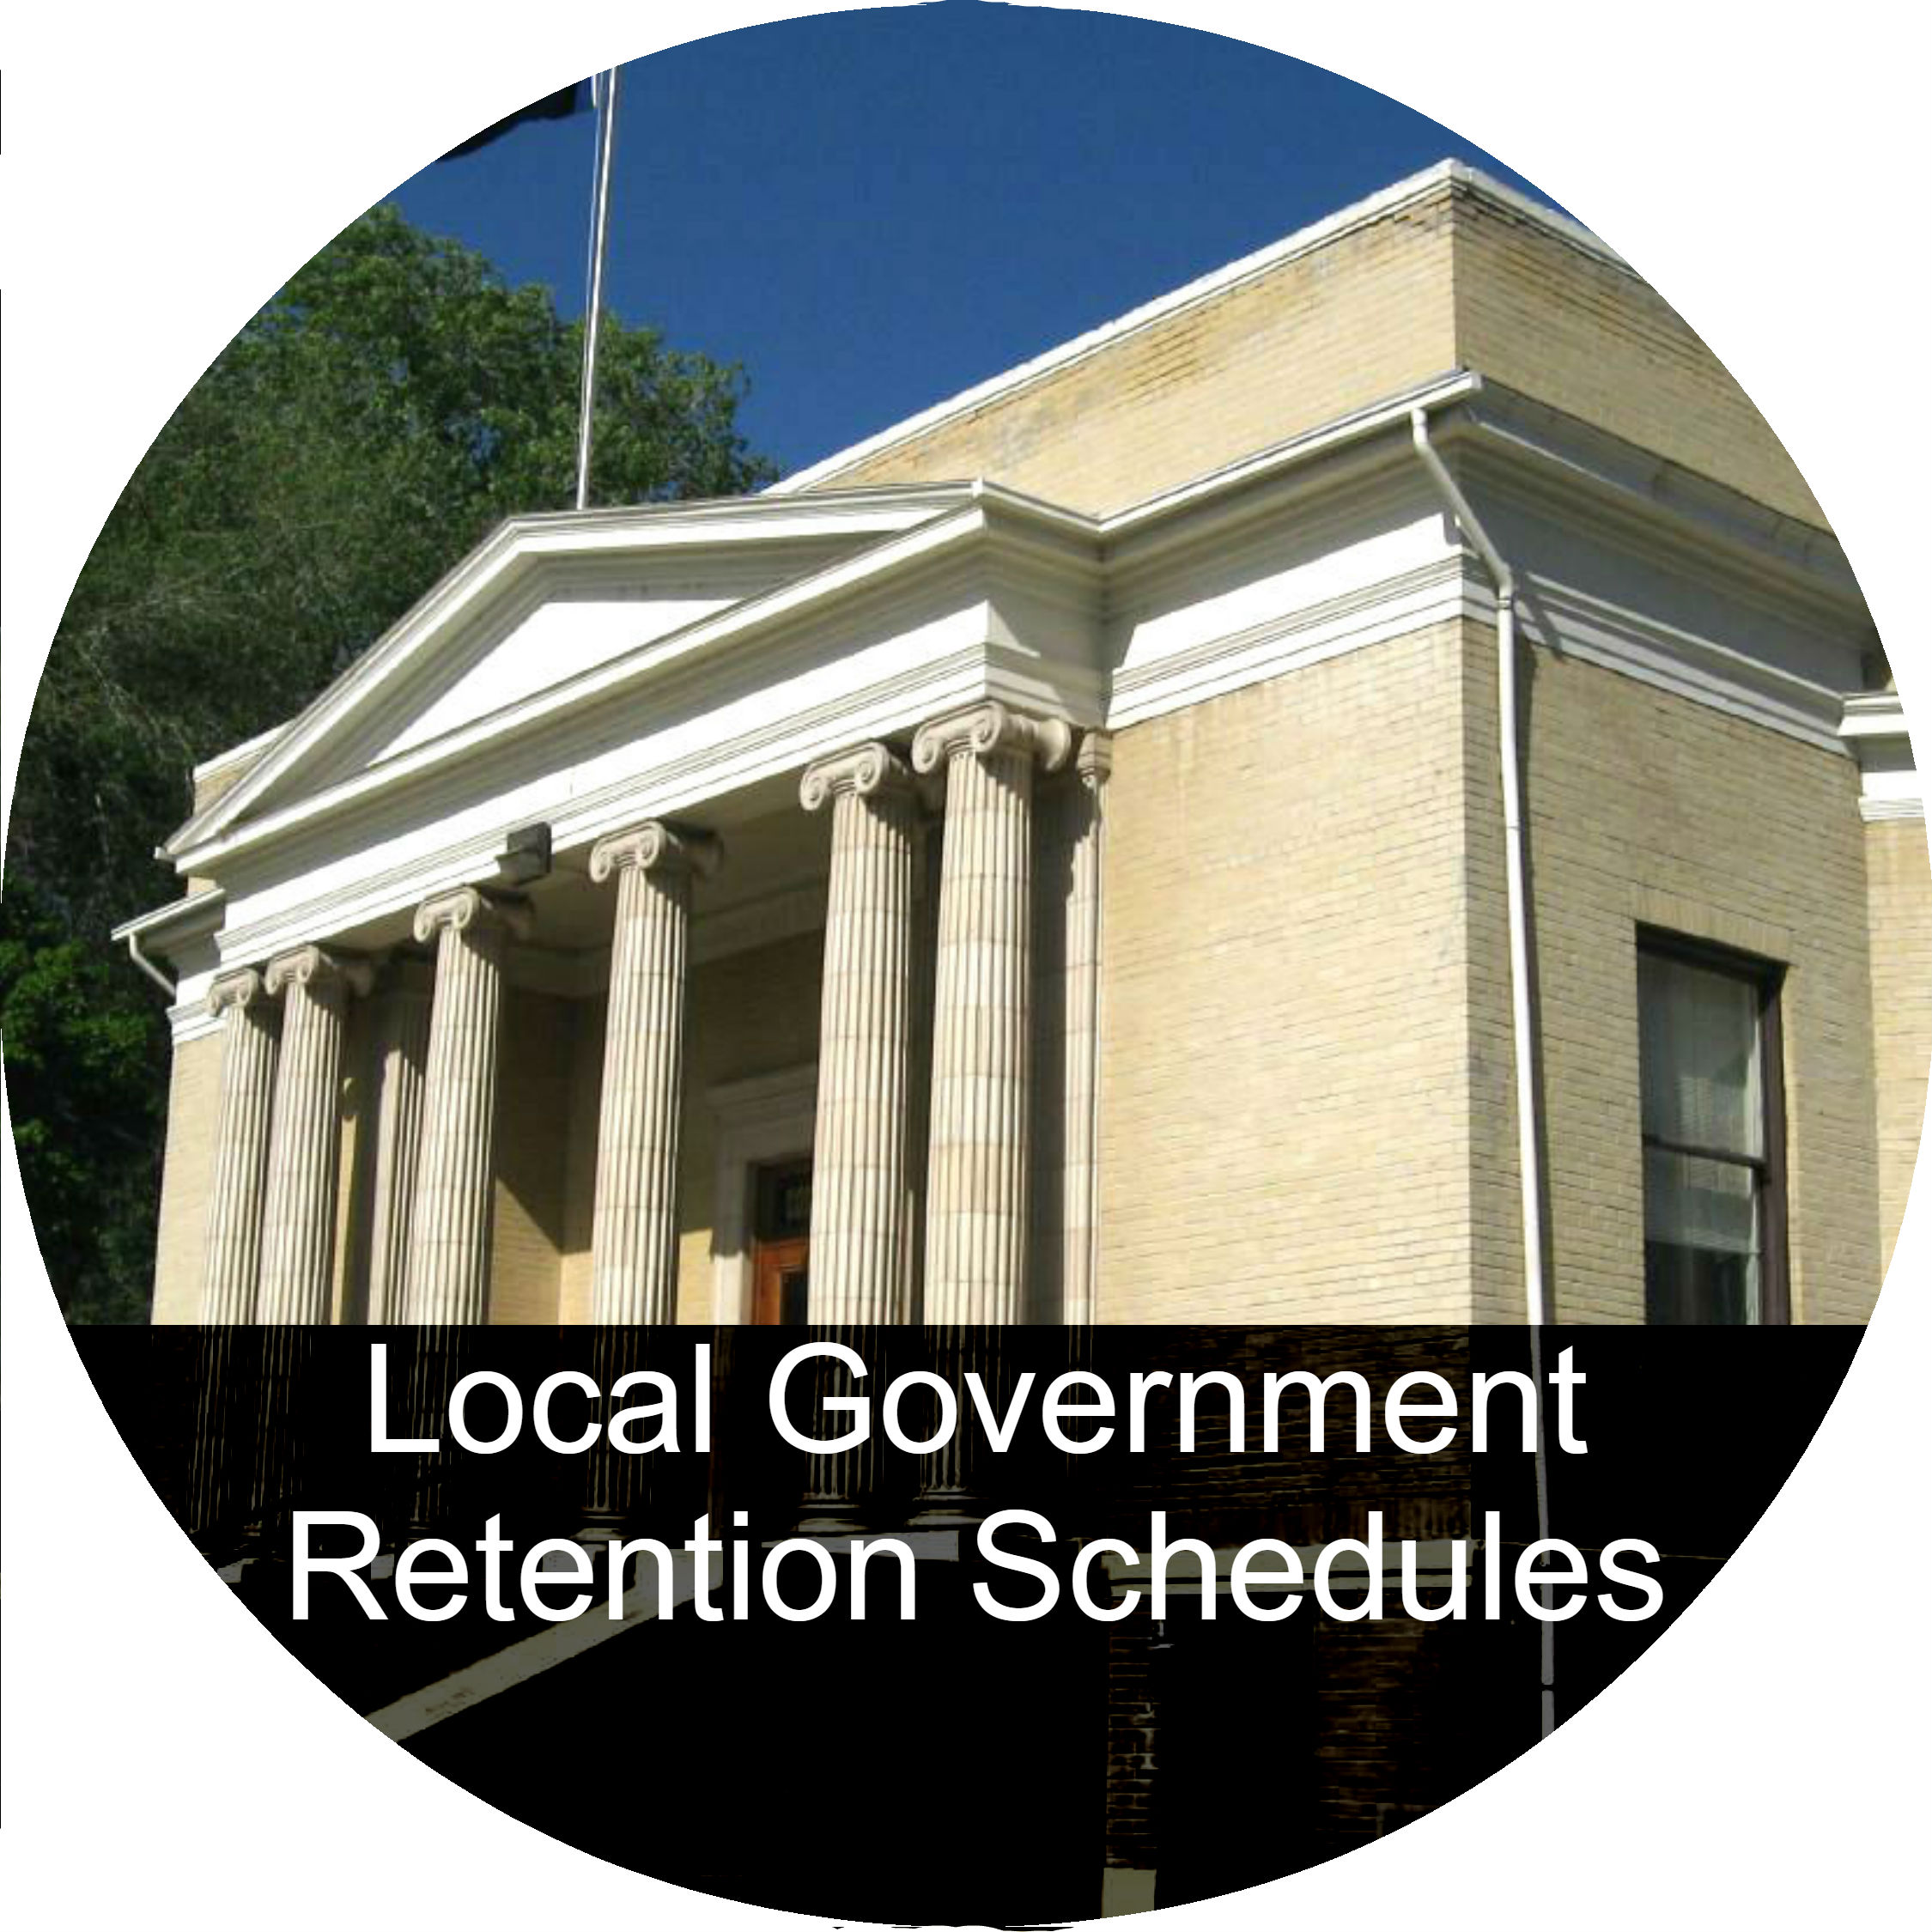 A button link to the Local Government Retention Schedules